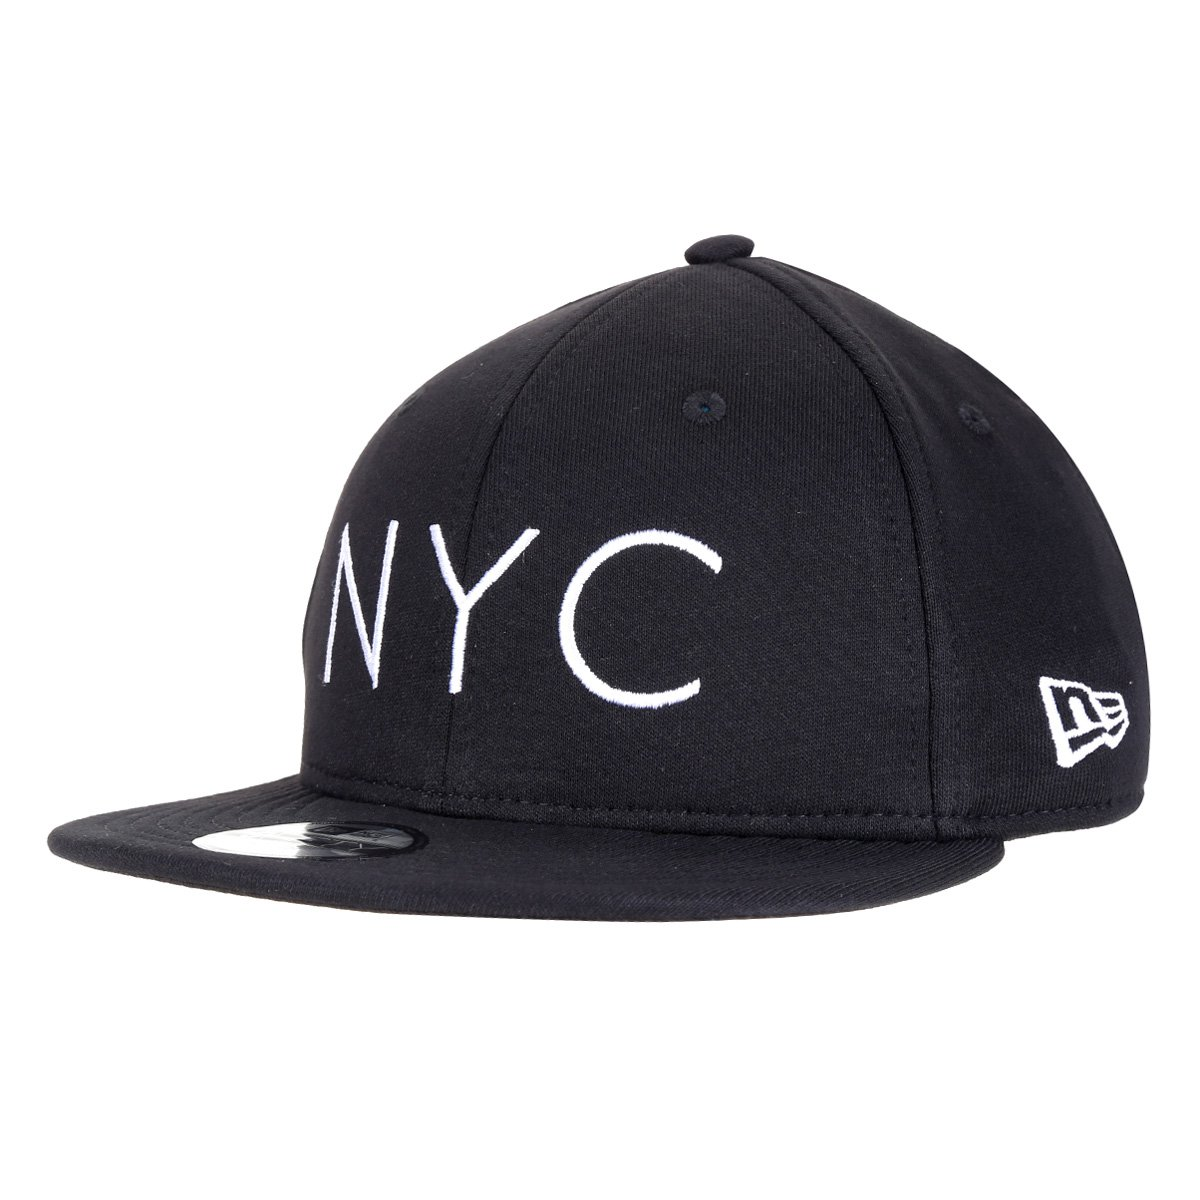 Boné Juvenil New Era Aba Reta Snapback 950 Sn Youth Sweat Nyc Masculino